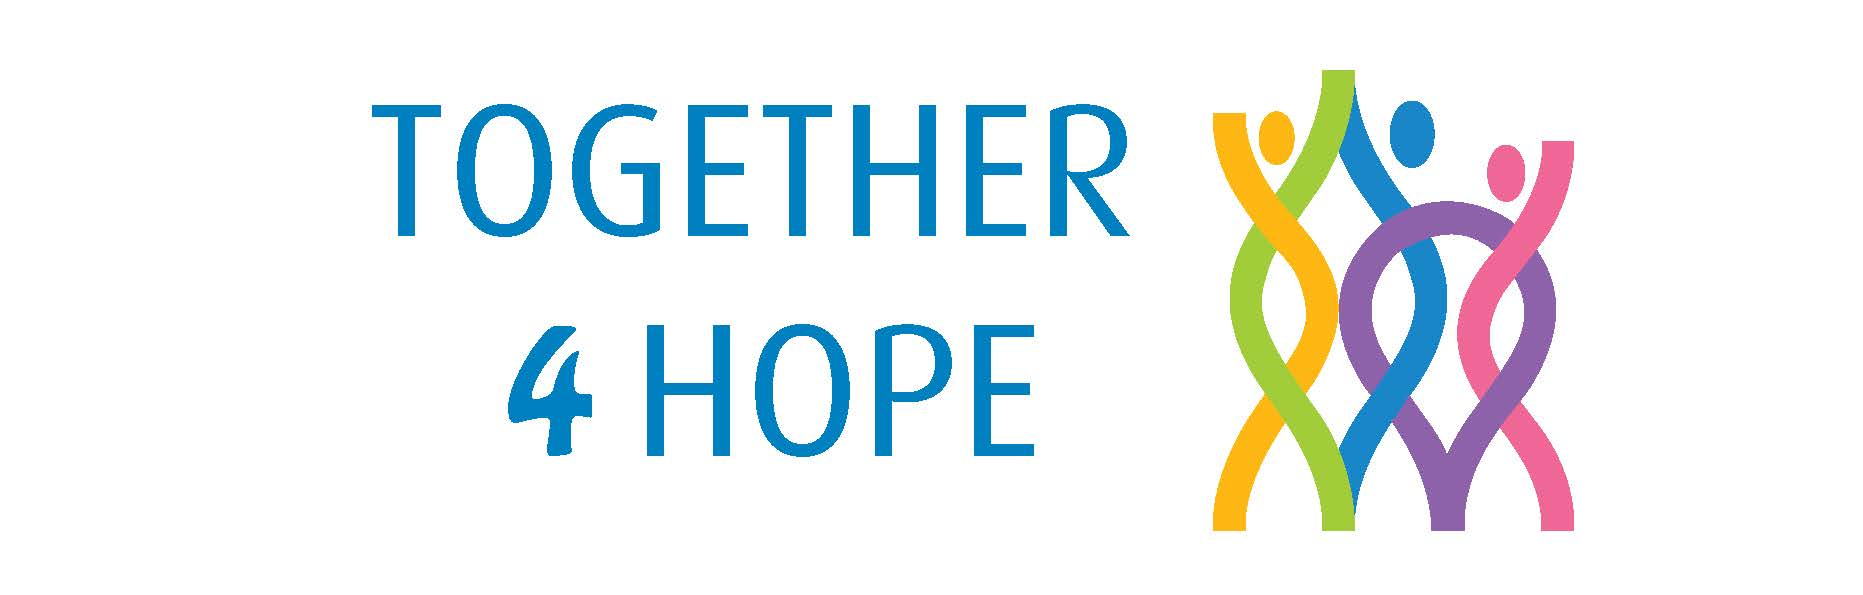 Together 4 Hope Suicide Prevention Initiatives logo